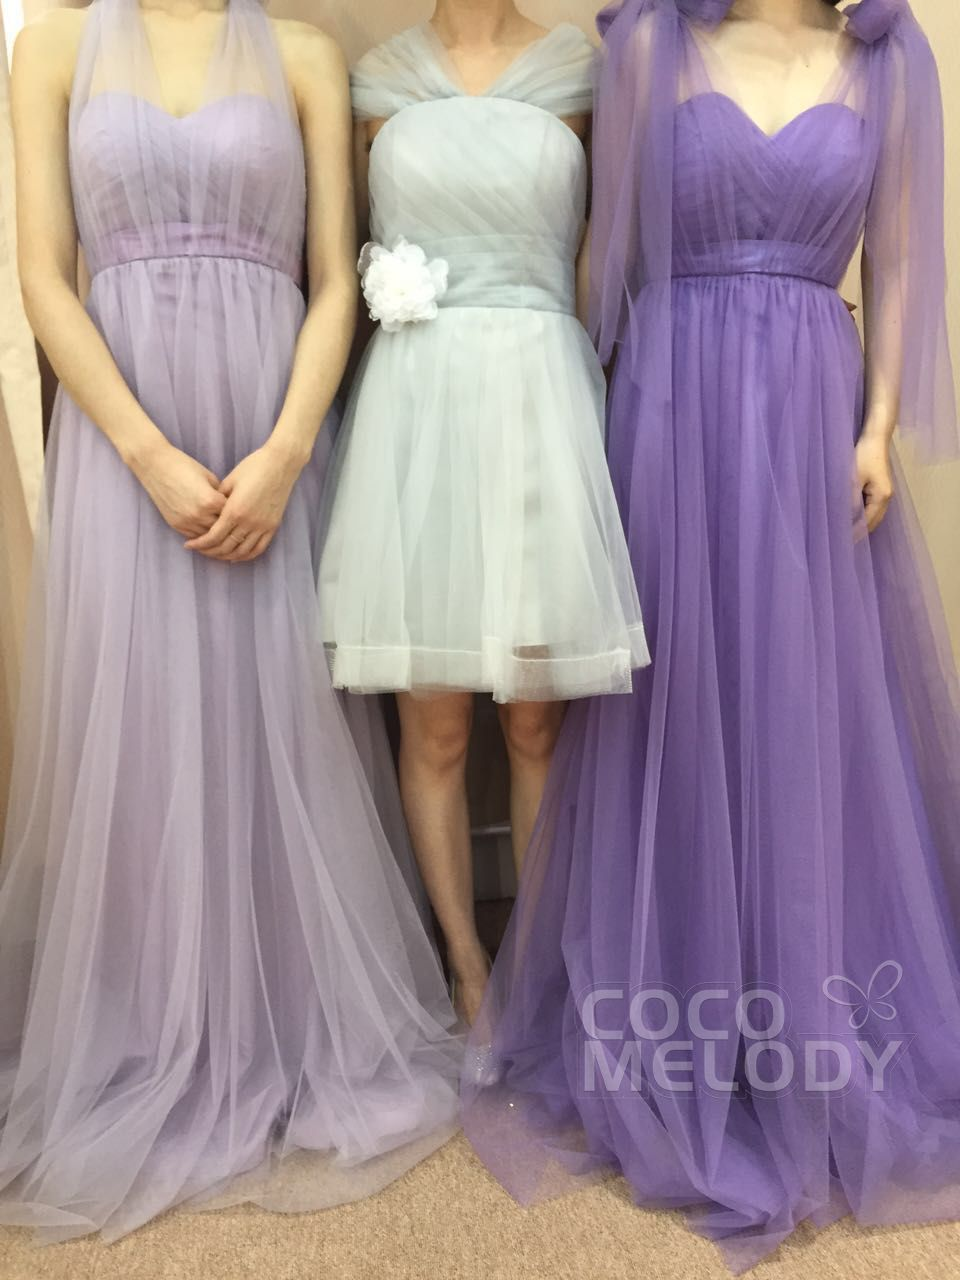 Wow , i would order these dresses for my bridesmaids ...